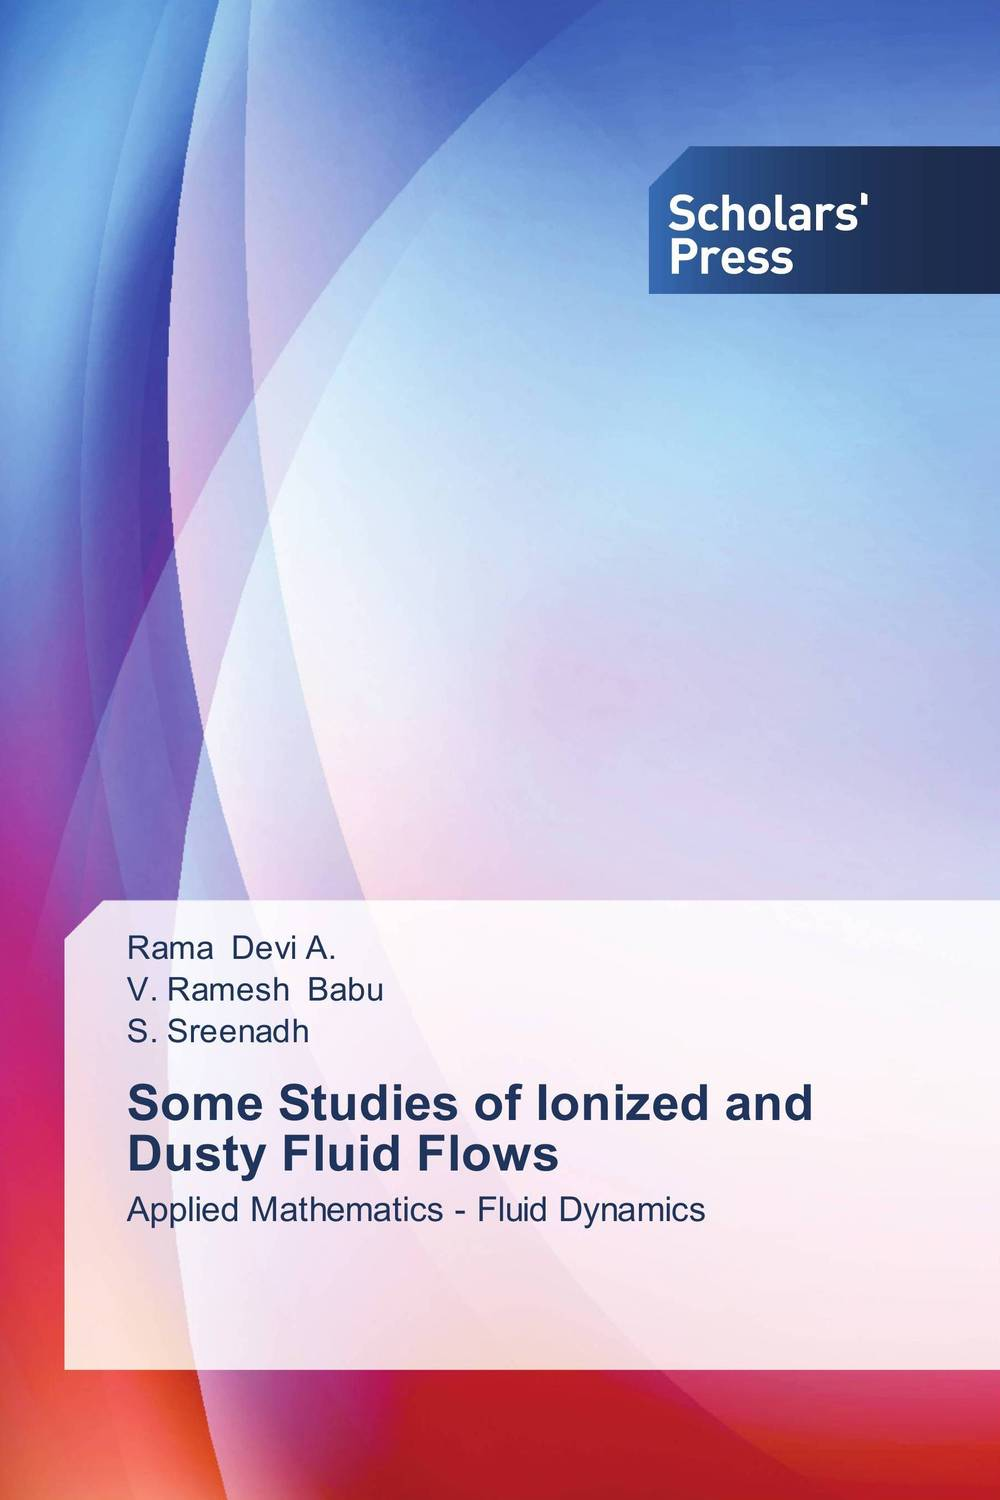 Some Studies of Ionized and Dusty Fluid Flows the valves are self acting i e they operate without the supply of auxiliary energy such as electricity or compressed air